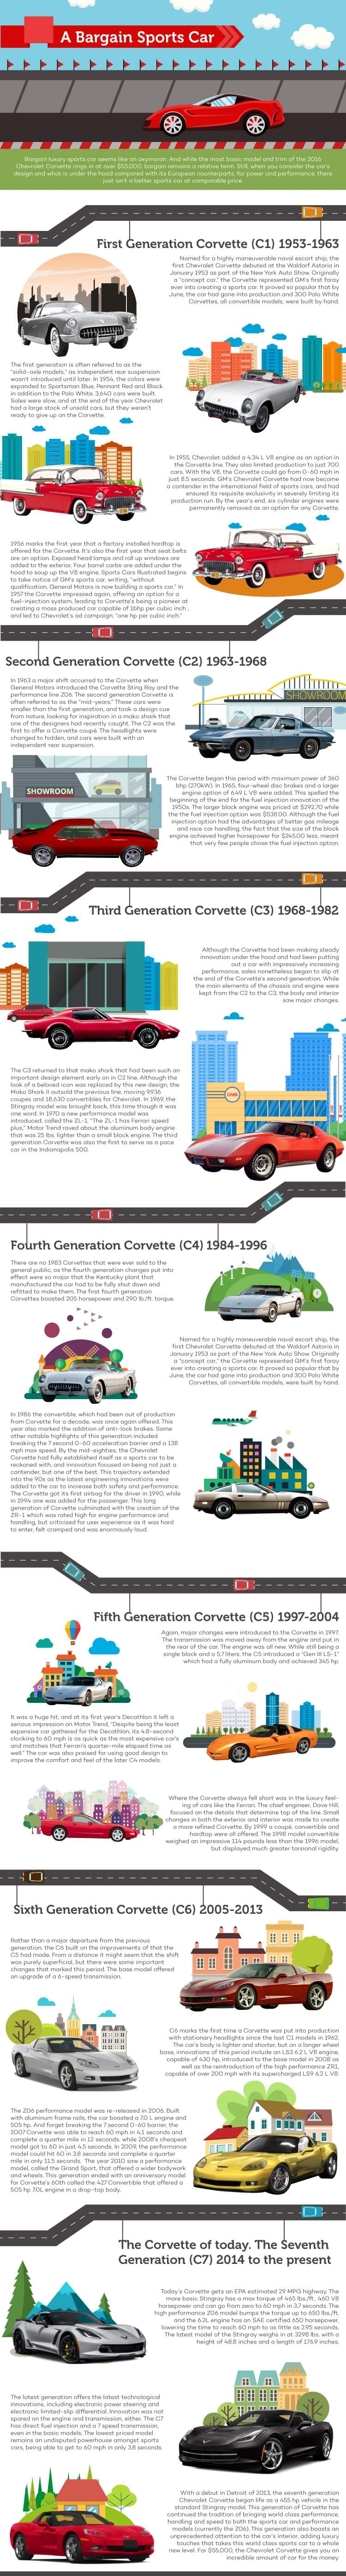 History of the Chevrolet Corvette